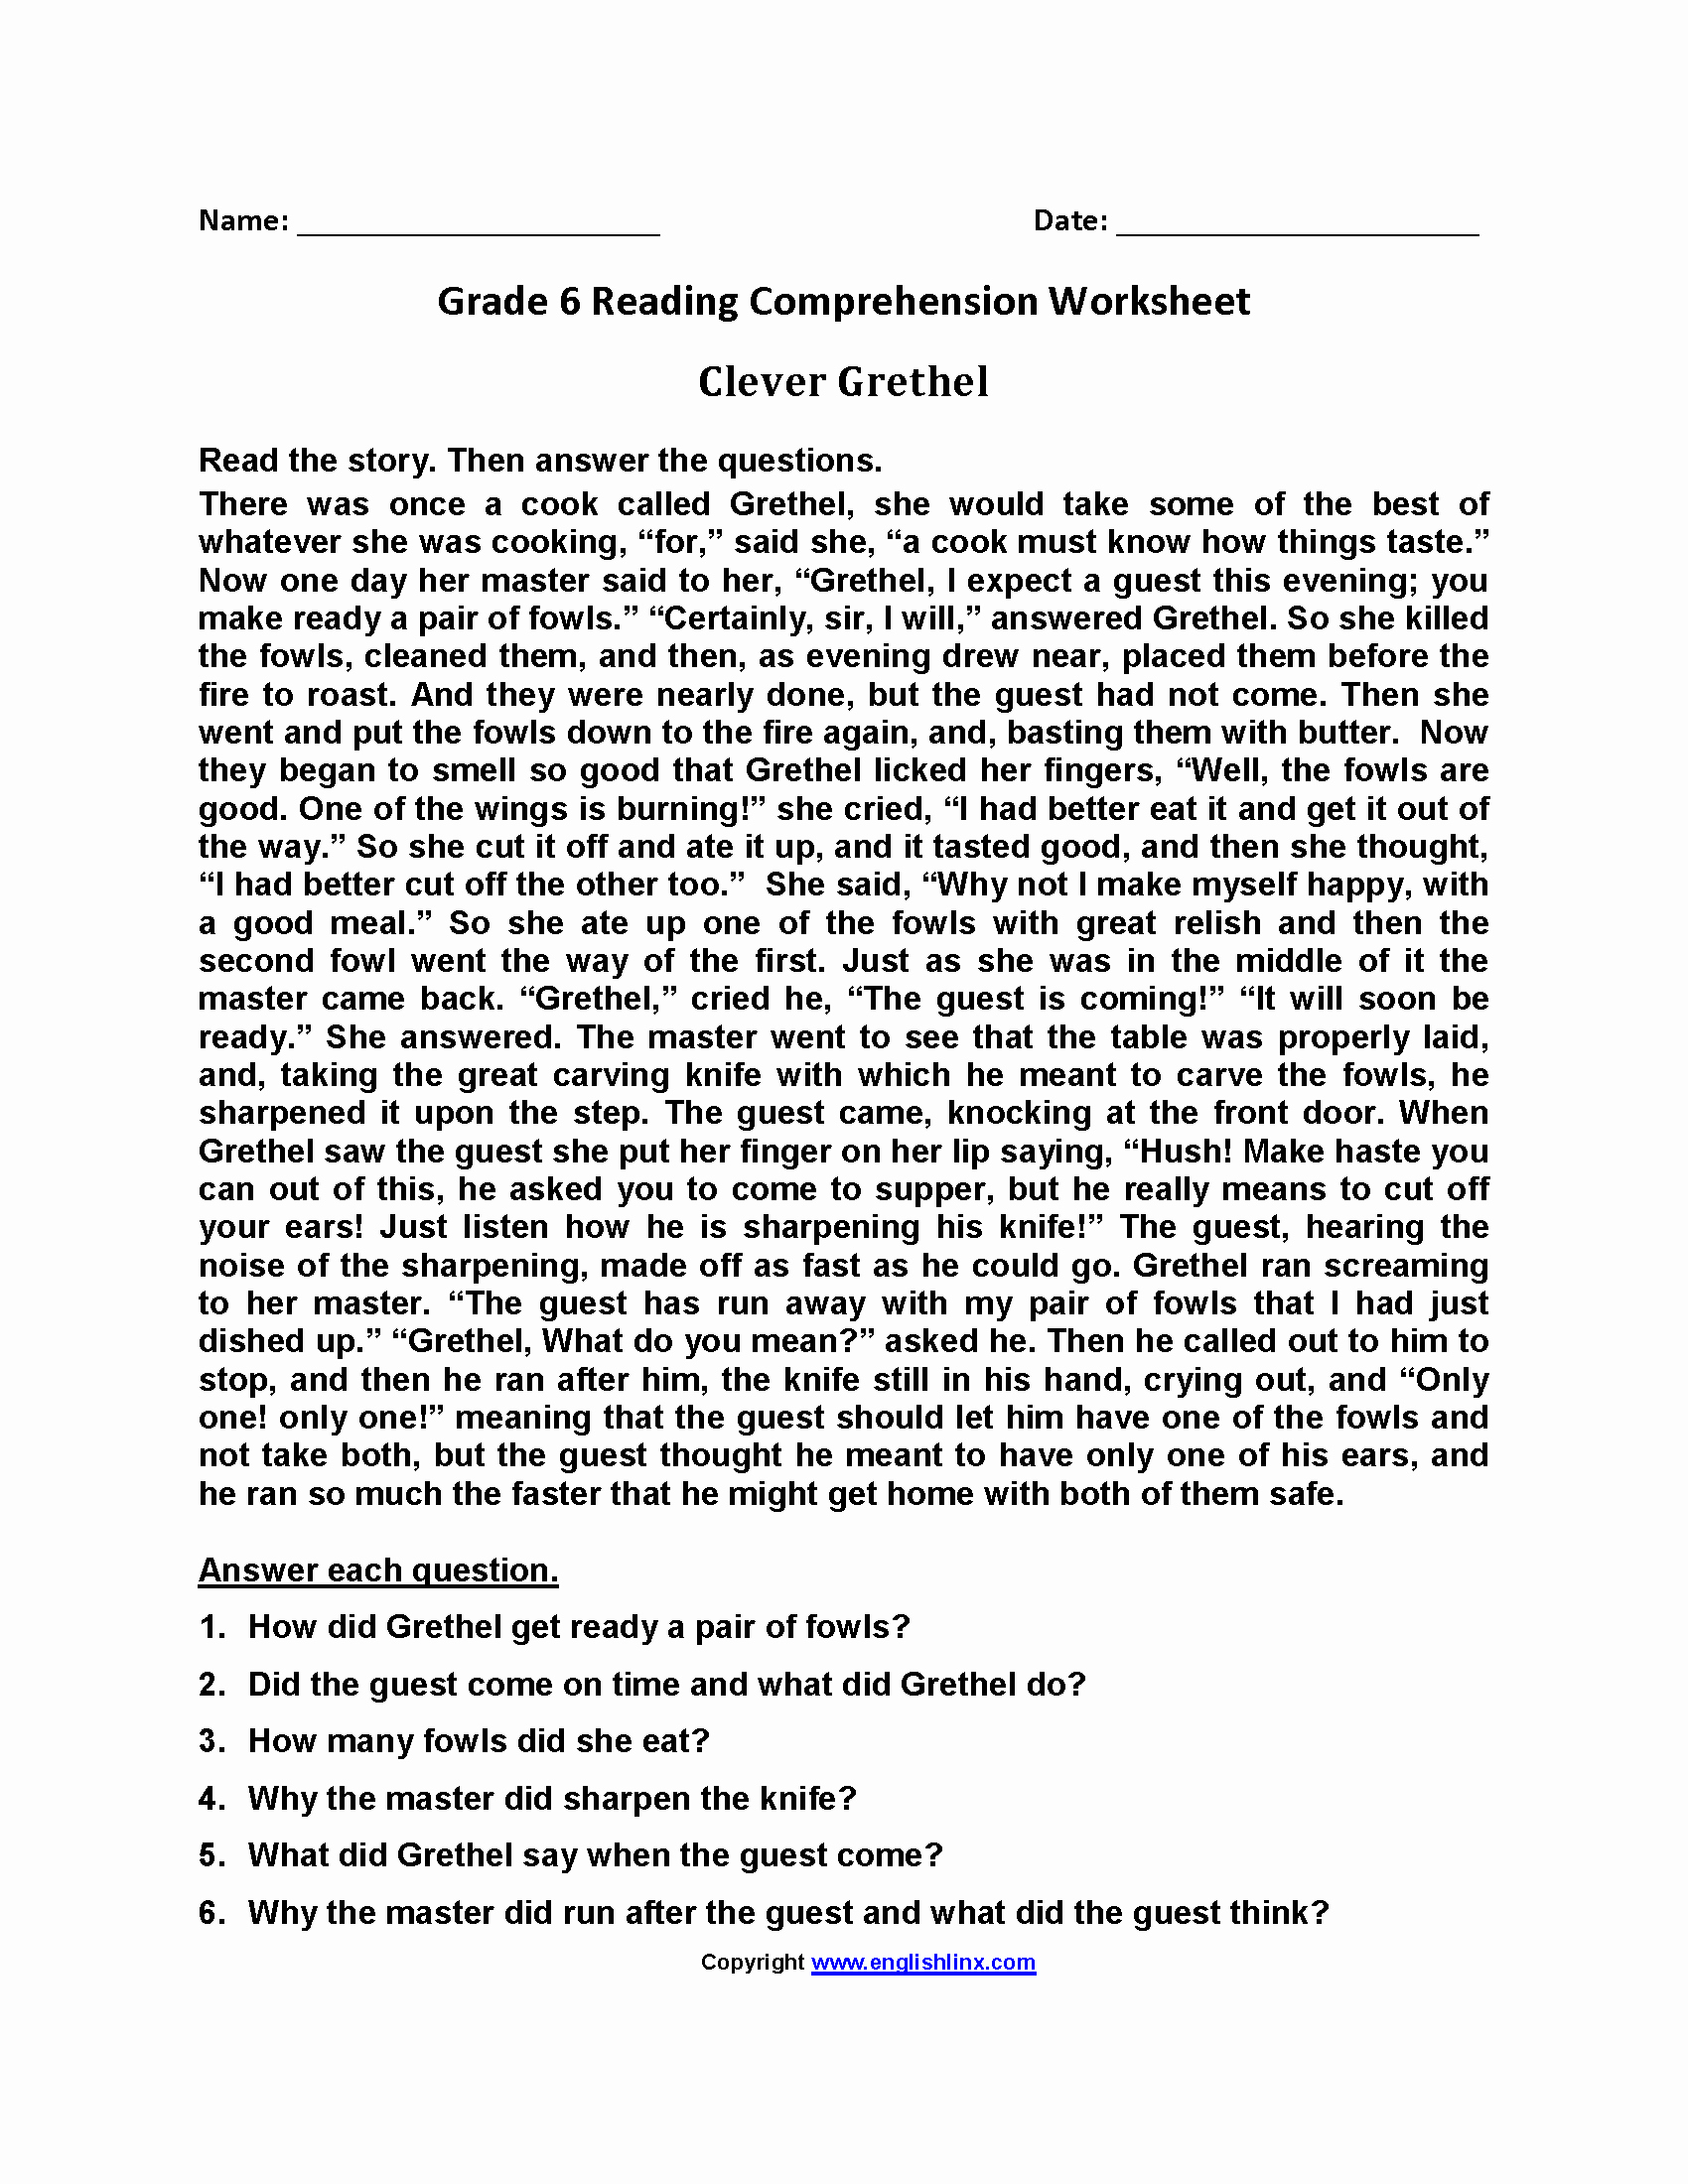 Comprehension Worksheets 6th Grade New English Prehension Worksheet Grade 6 Advance Worksheet